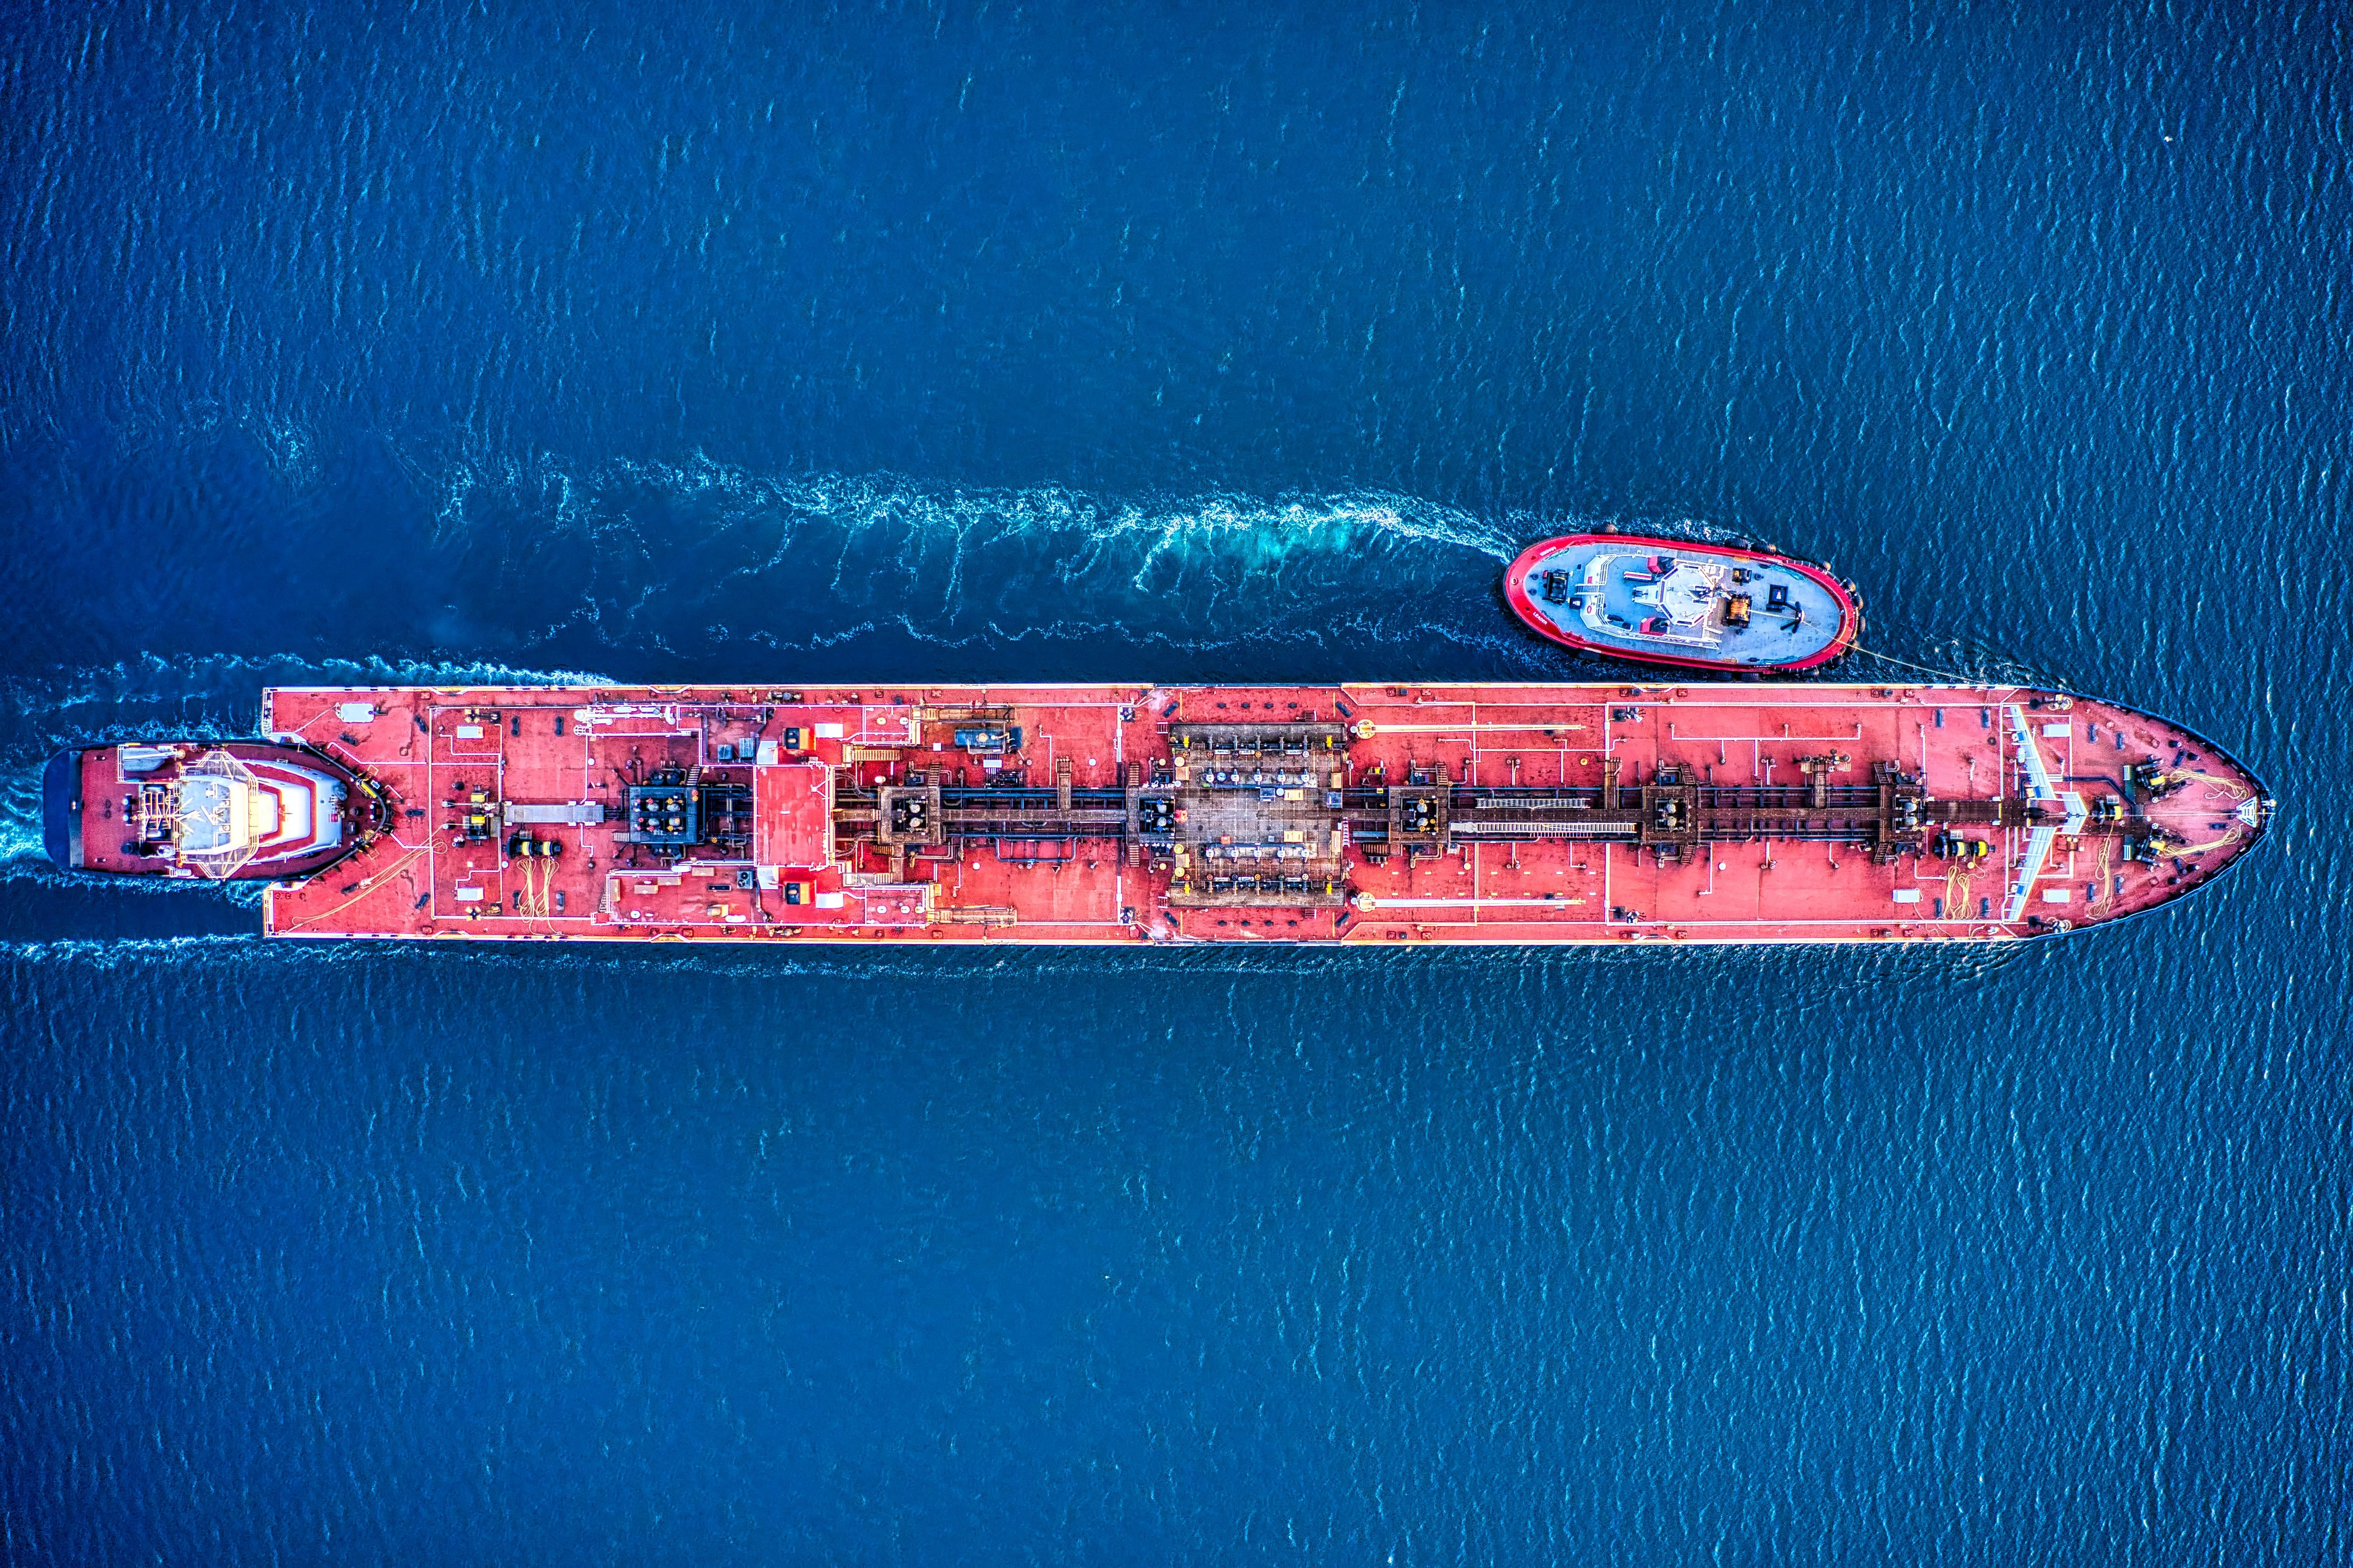 Red tanker and tug boats in ocean.